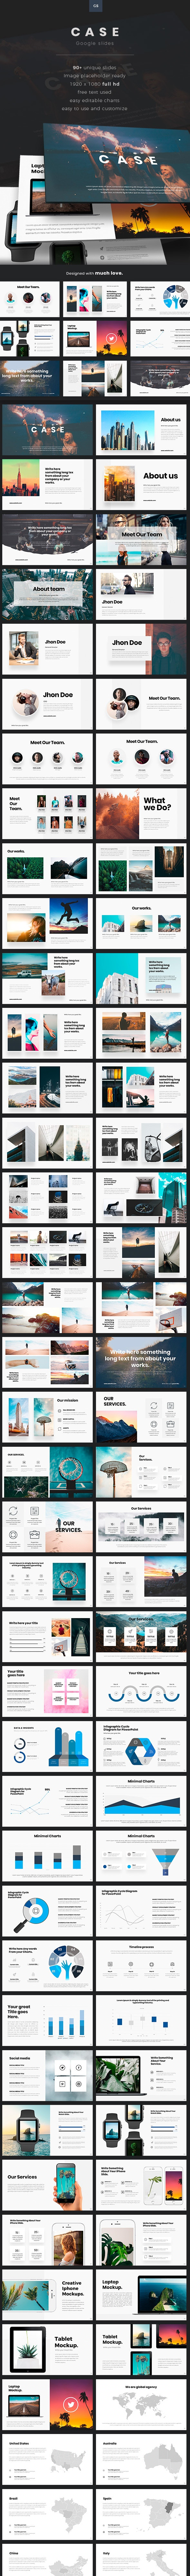 Case Google Slides - Google Slides Presentation Templates